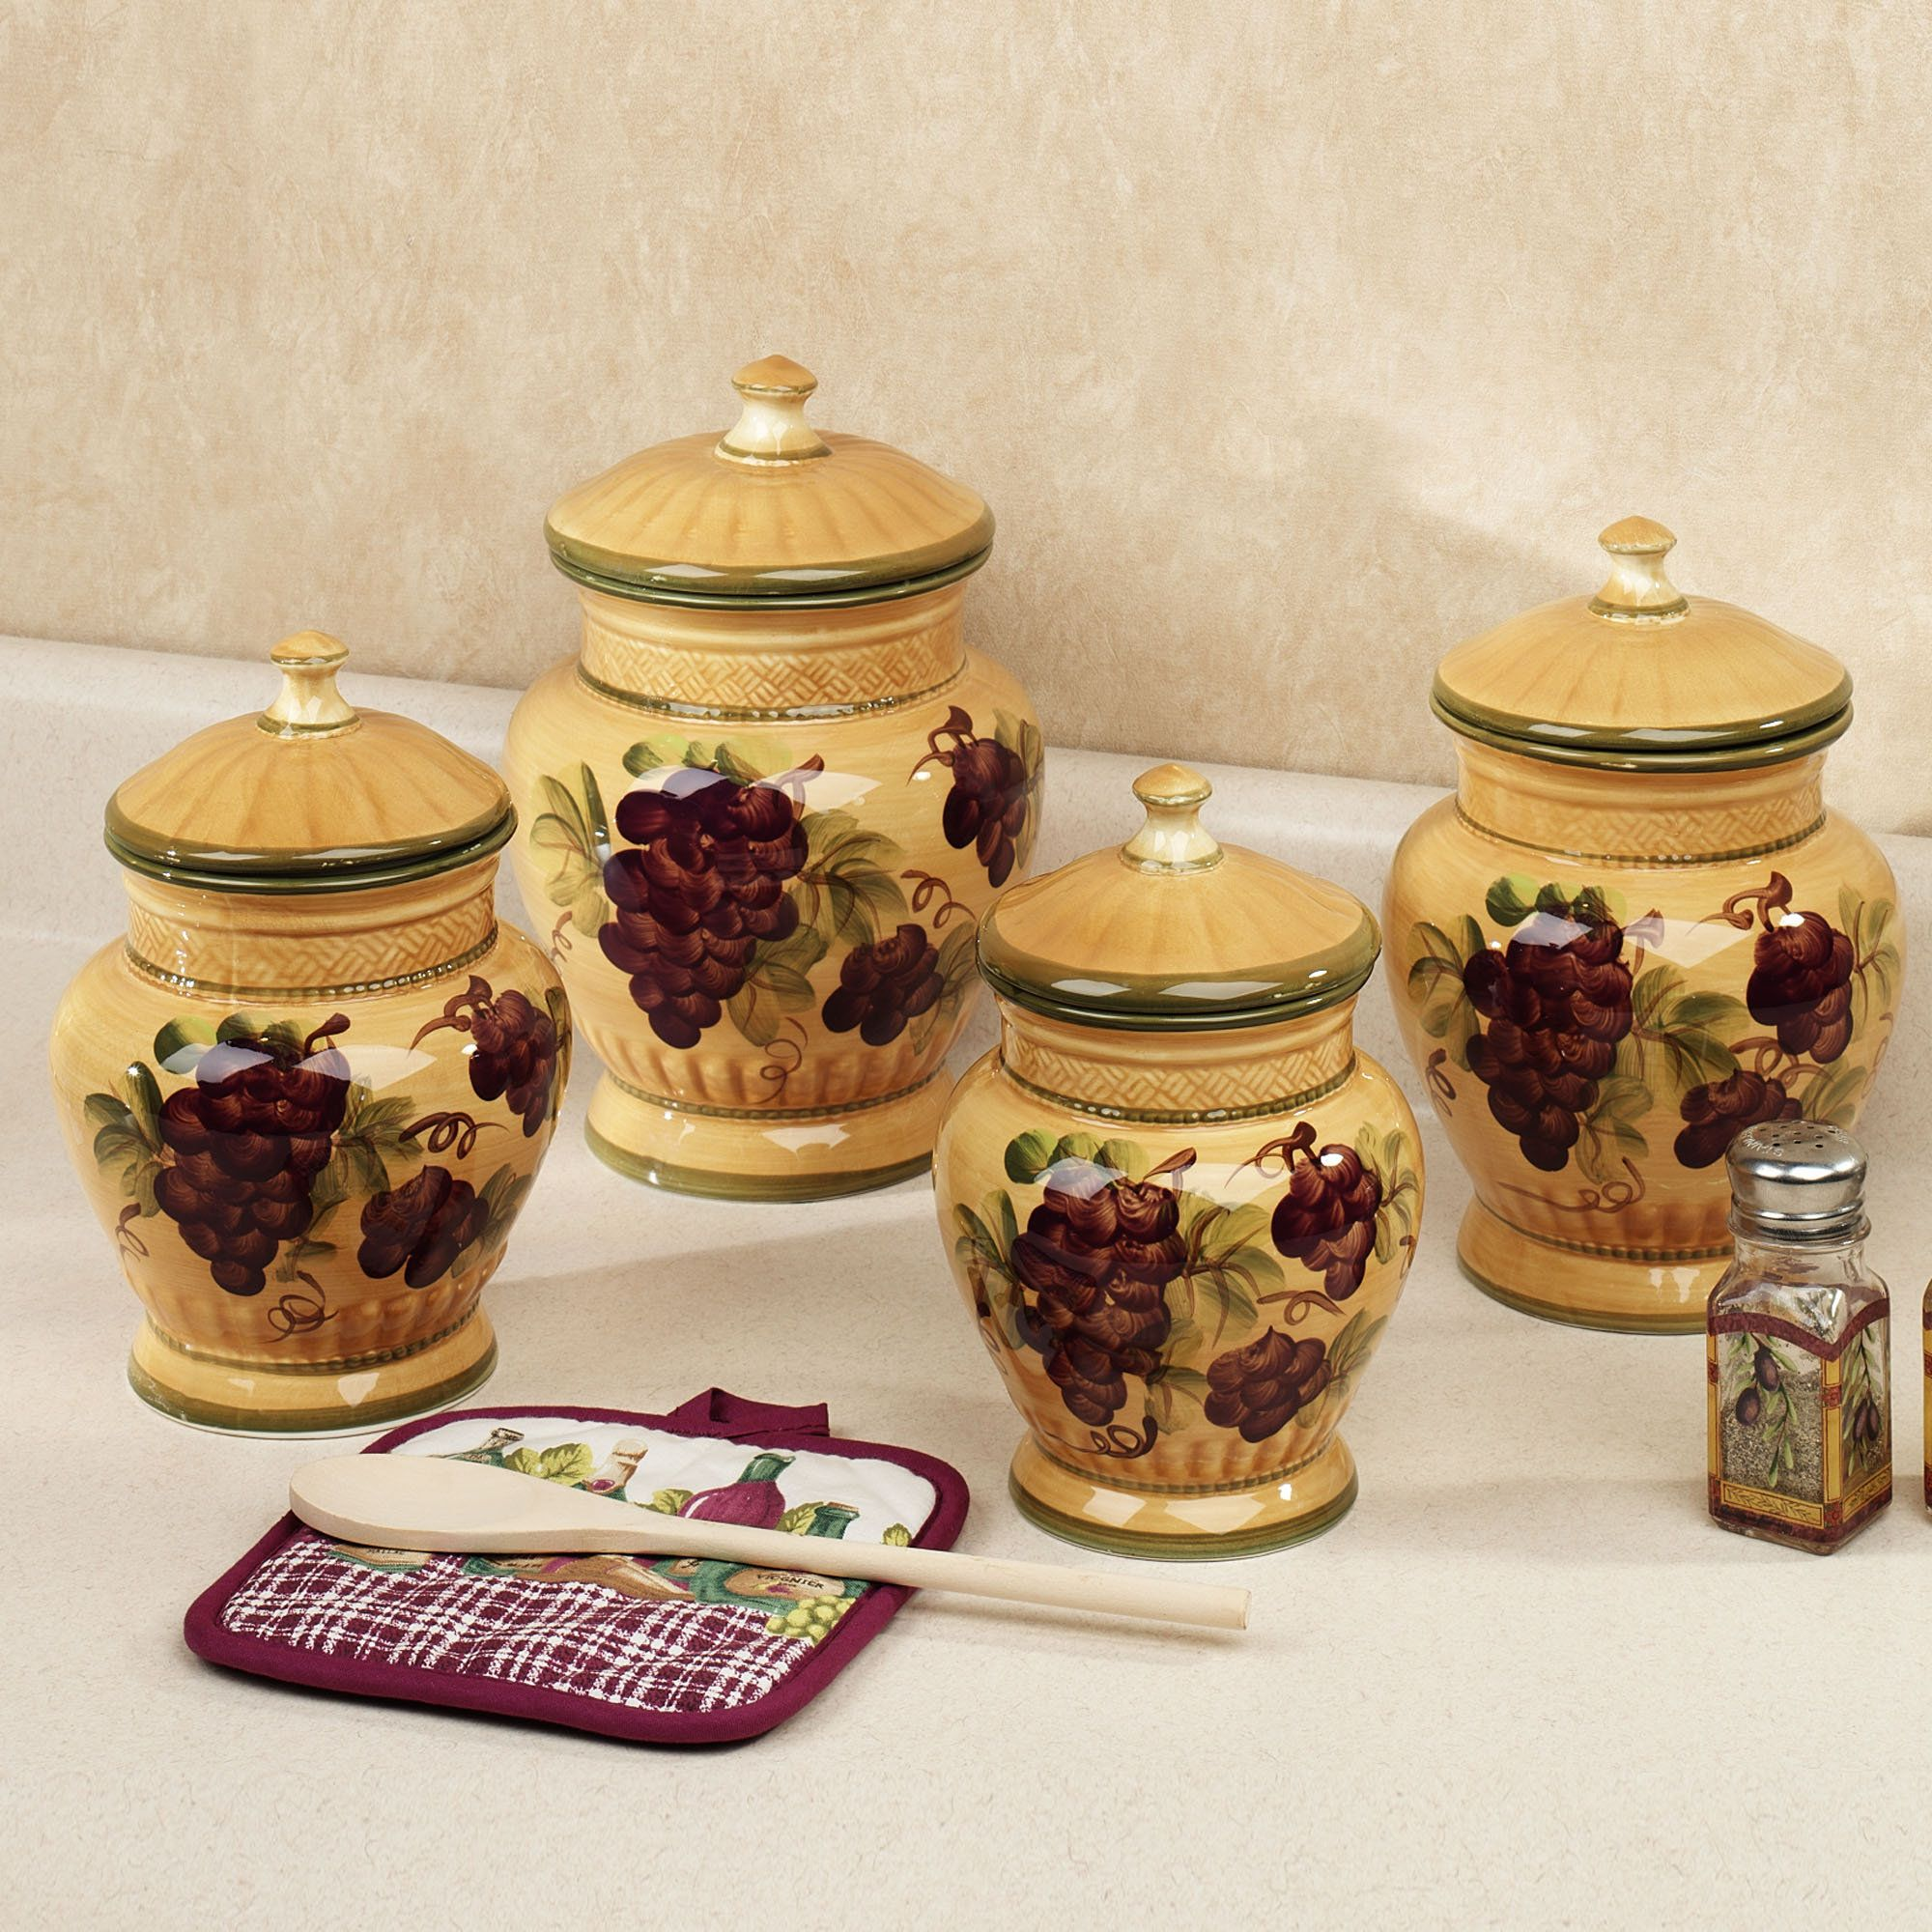 Rustic Kitchen Canister Sets Handpainted Grapes Kitchen Canister Set Ceramics Canister Sets